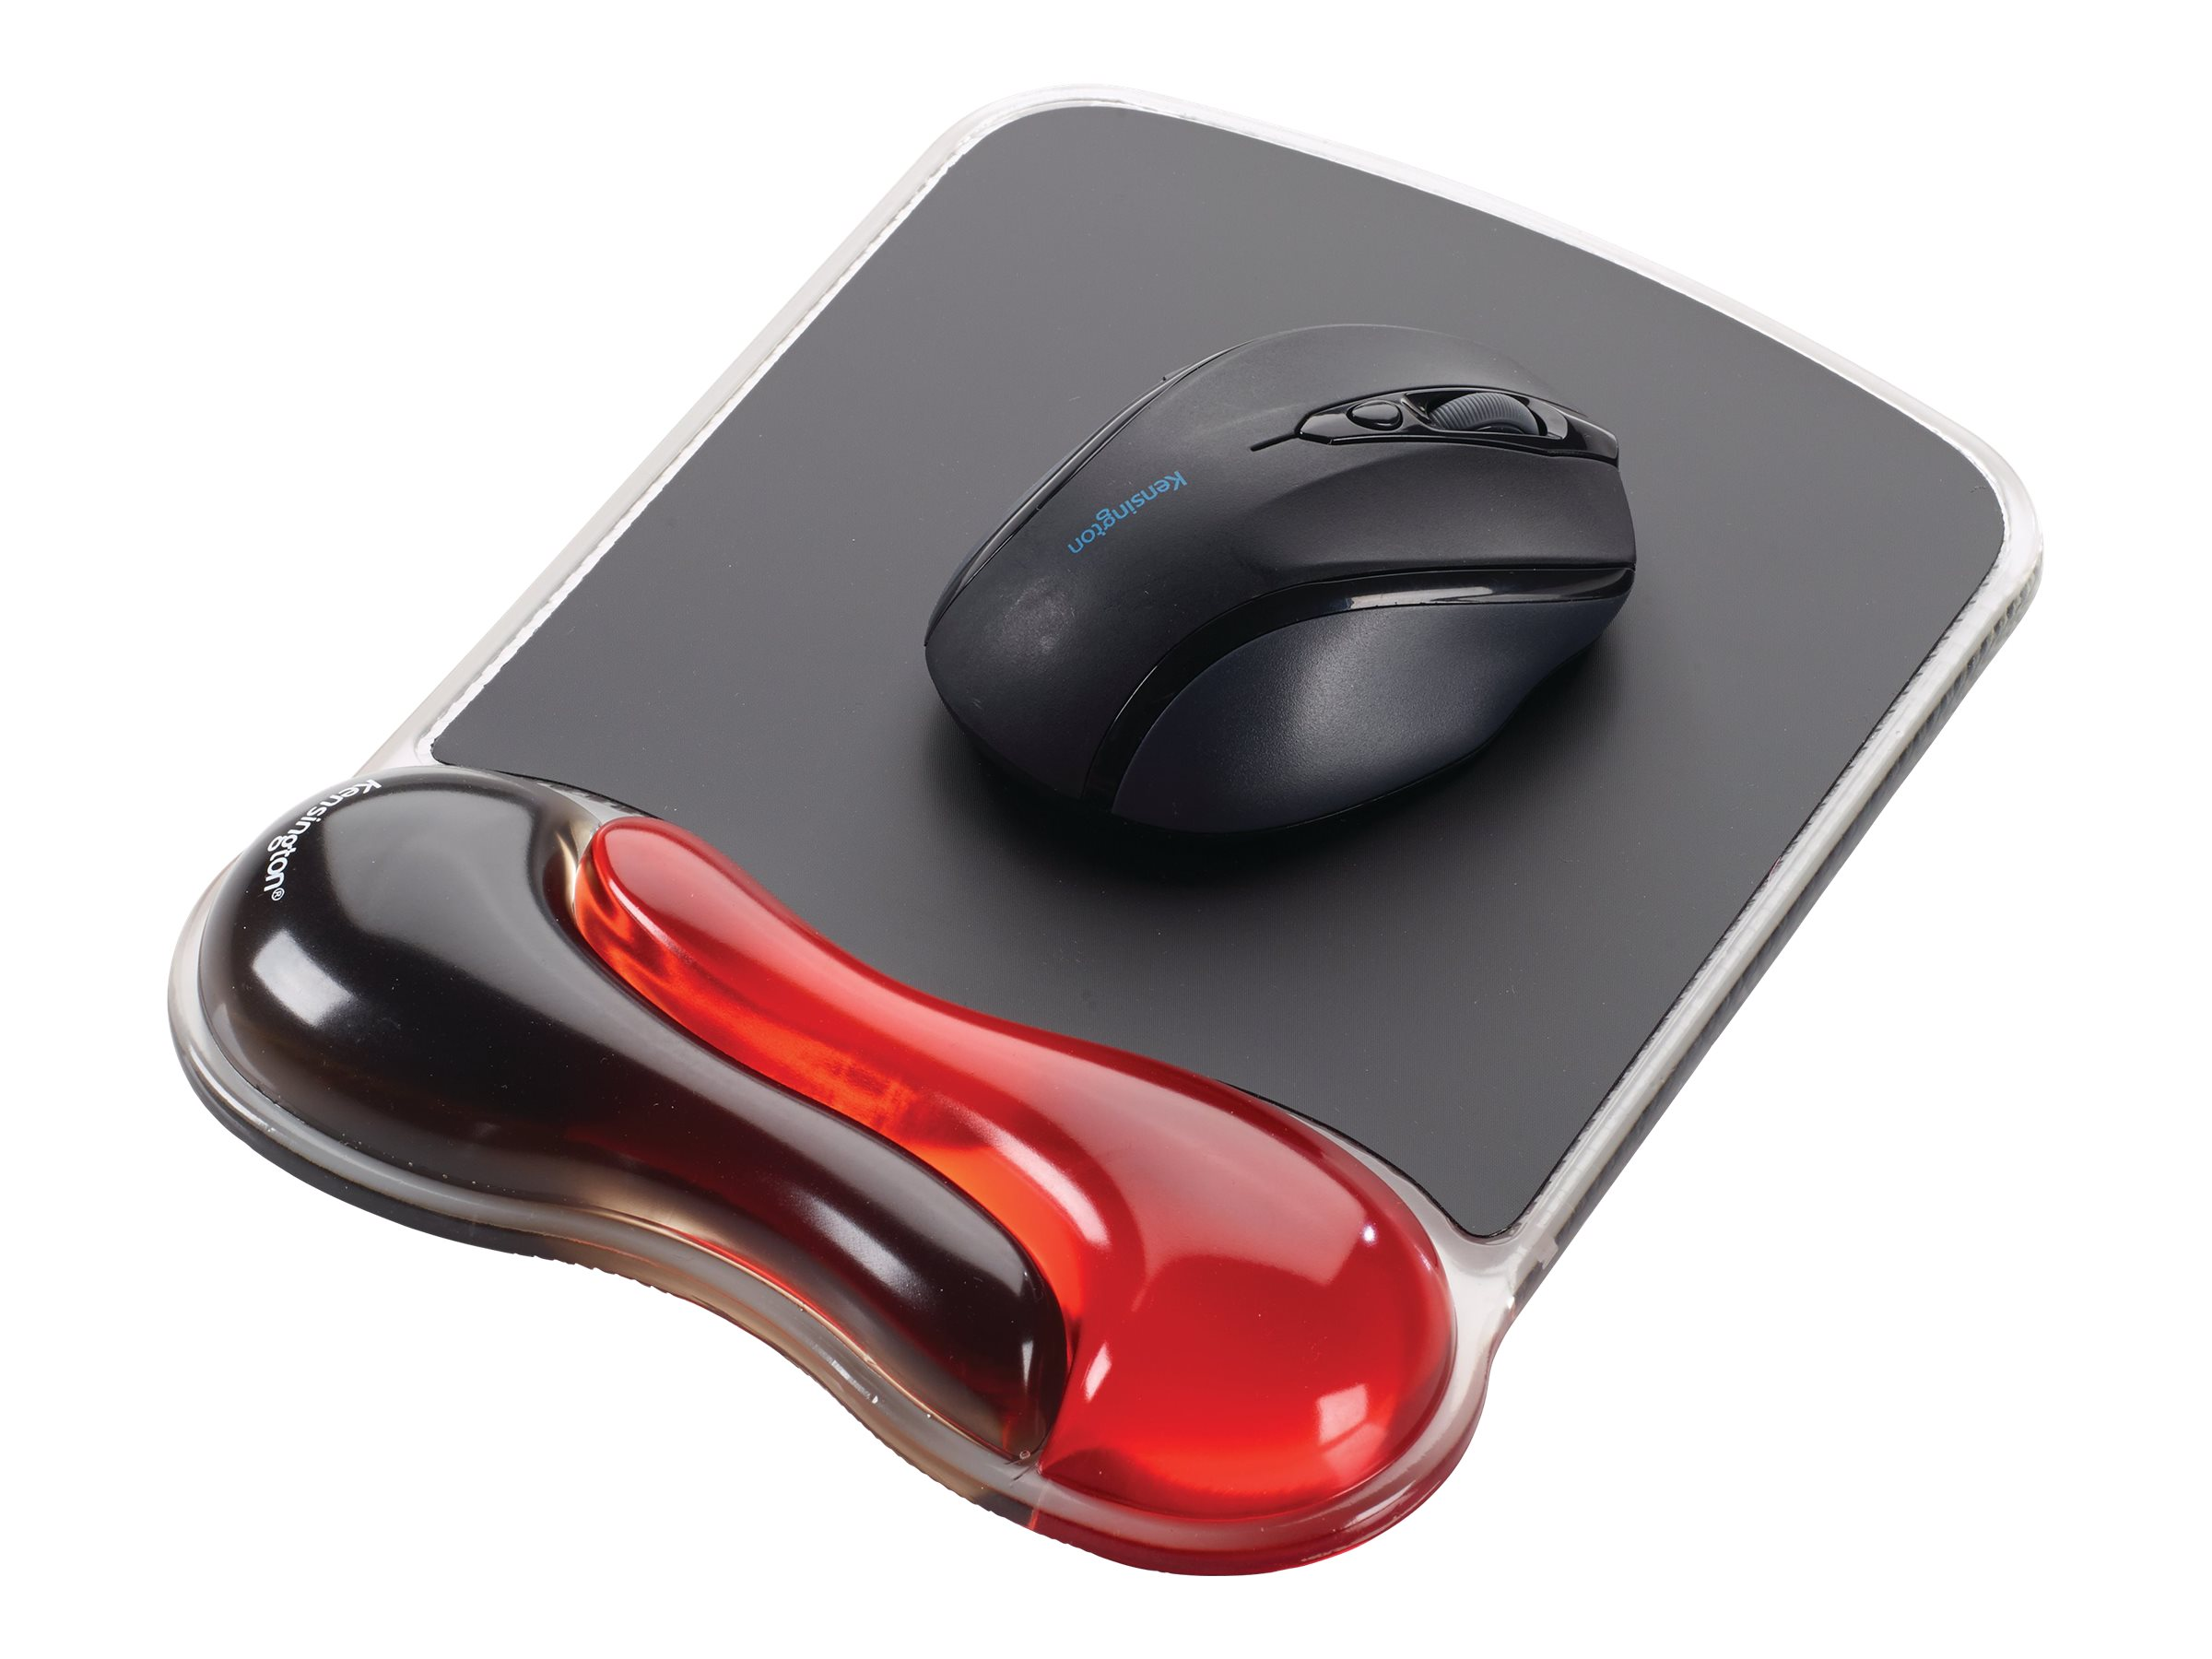 Kensington Duo Gel Wave M Wrist Rest for Mouse, Red, K62402AM